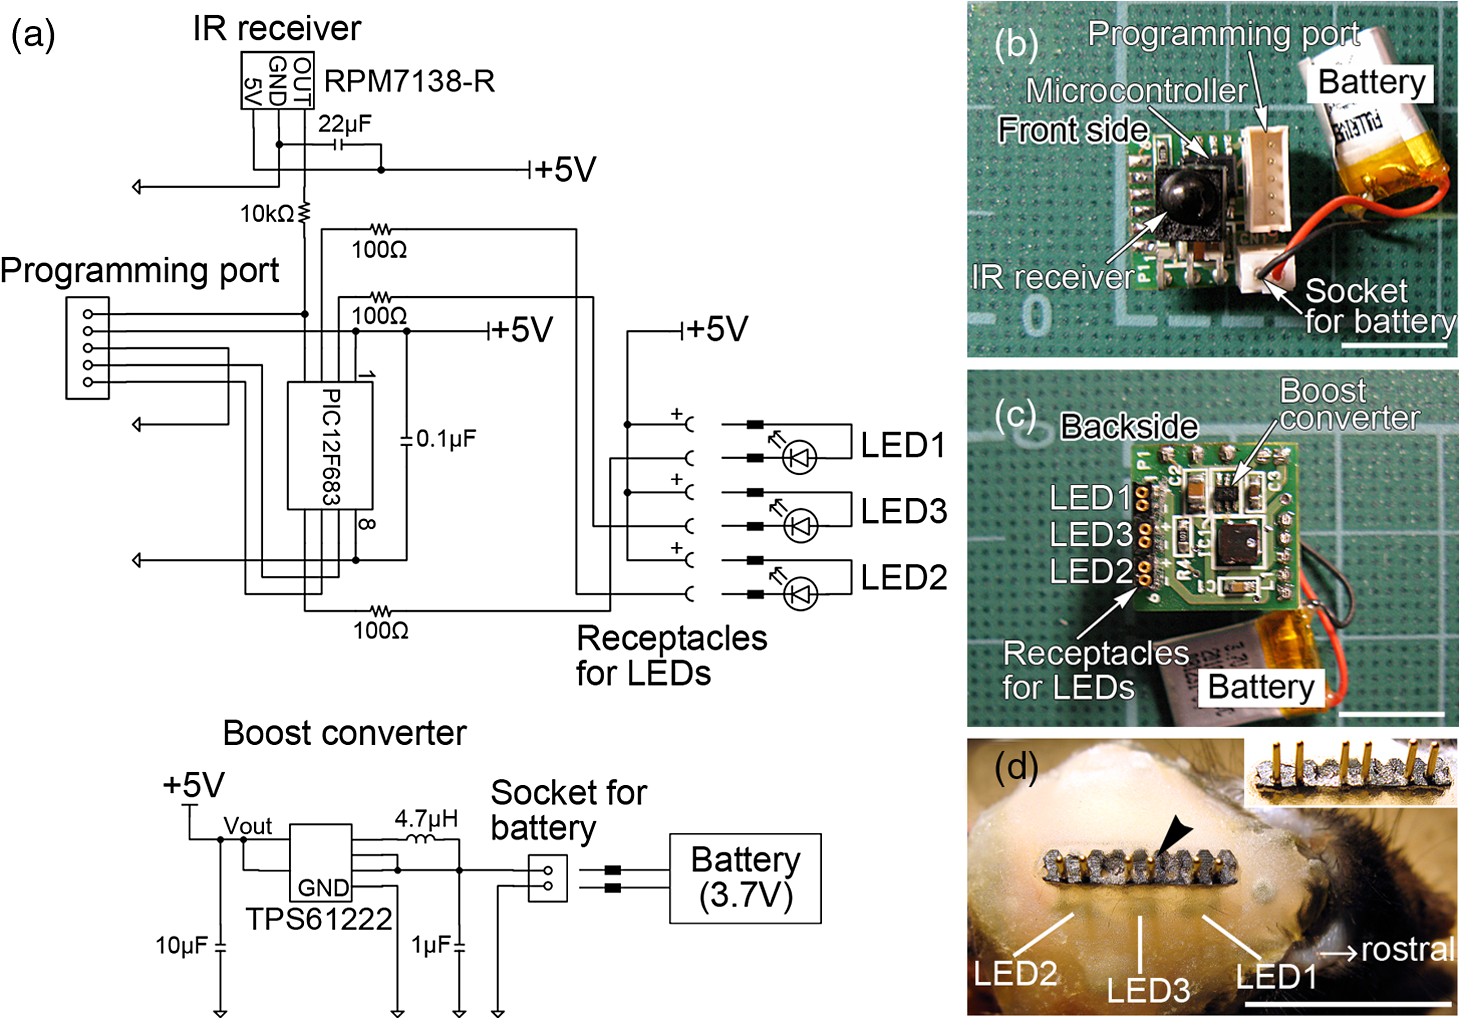 Programmable Wireless Light Emitting Diode Stimulator For Chronic Is A Typical Block Diagram Of Optical Mouse Transmitter Connector Indicated By An Arrowhead Serves As The Interface Between Leds And Led Inset Shows Side View Plug